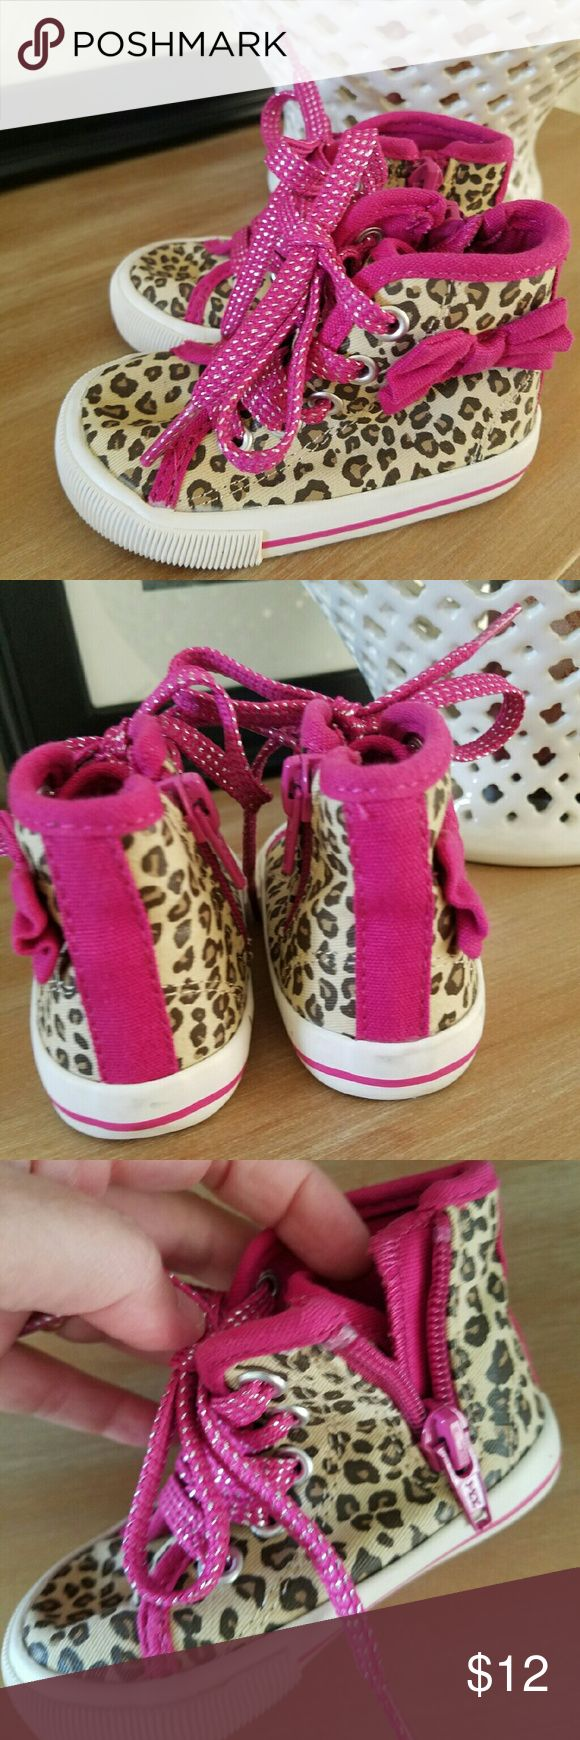 Toddler Girls Sz 4 Leopard & Pink Sneakers Shoes Extremely clean. Looks new. I don't believe they were even worn. Size 4. Zippers on the side to help get on & off. The brand is from Oshkosh-Genuine kids. Smoke-free home.  Fast shipping. genuine kids from Oshkosh  Shoes Sneakers